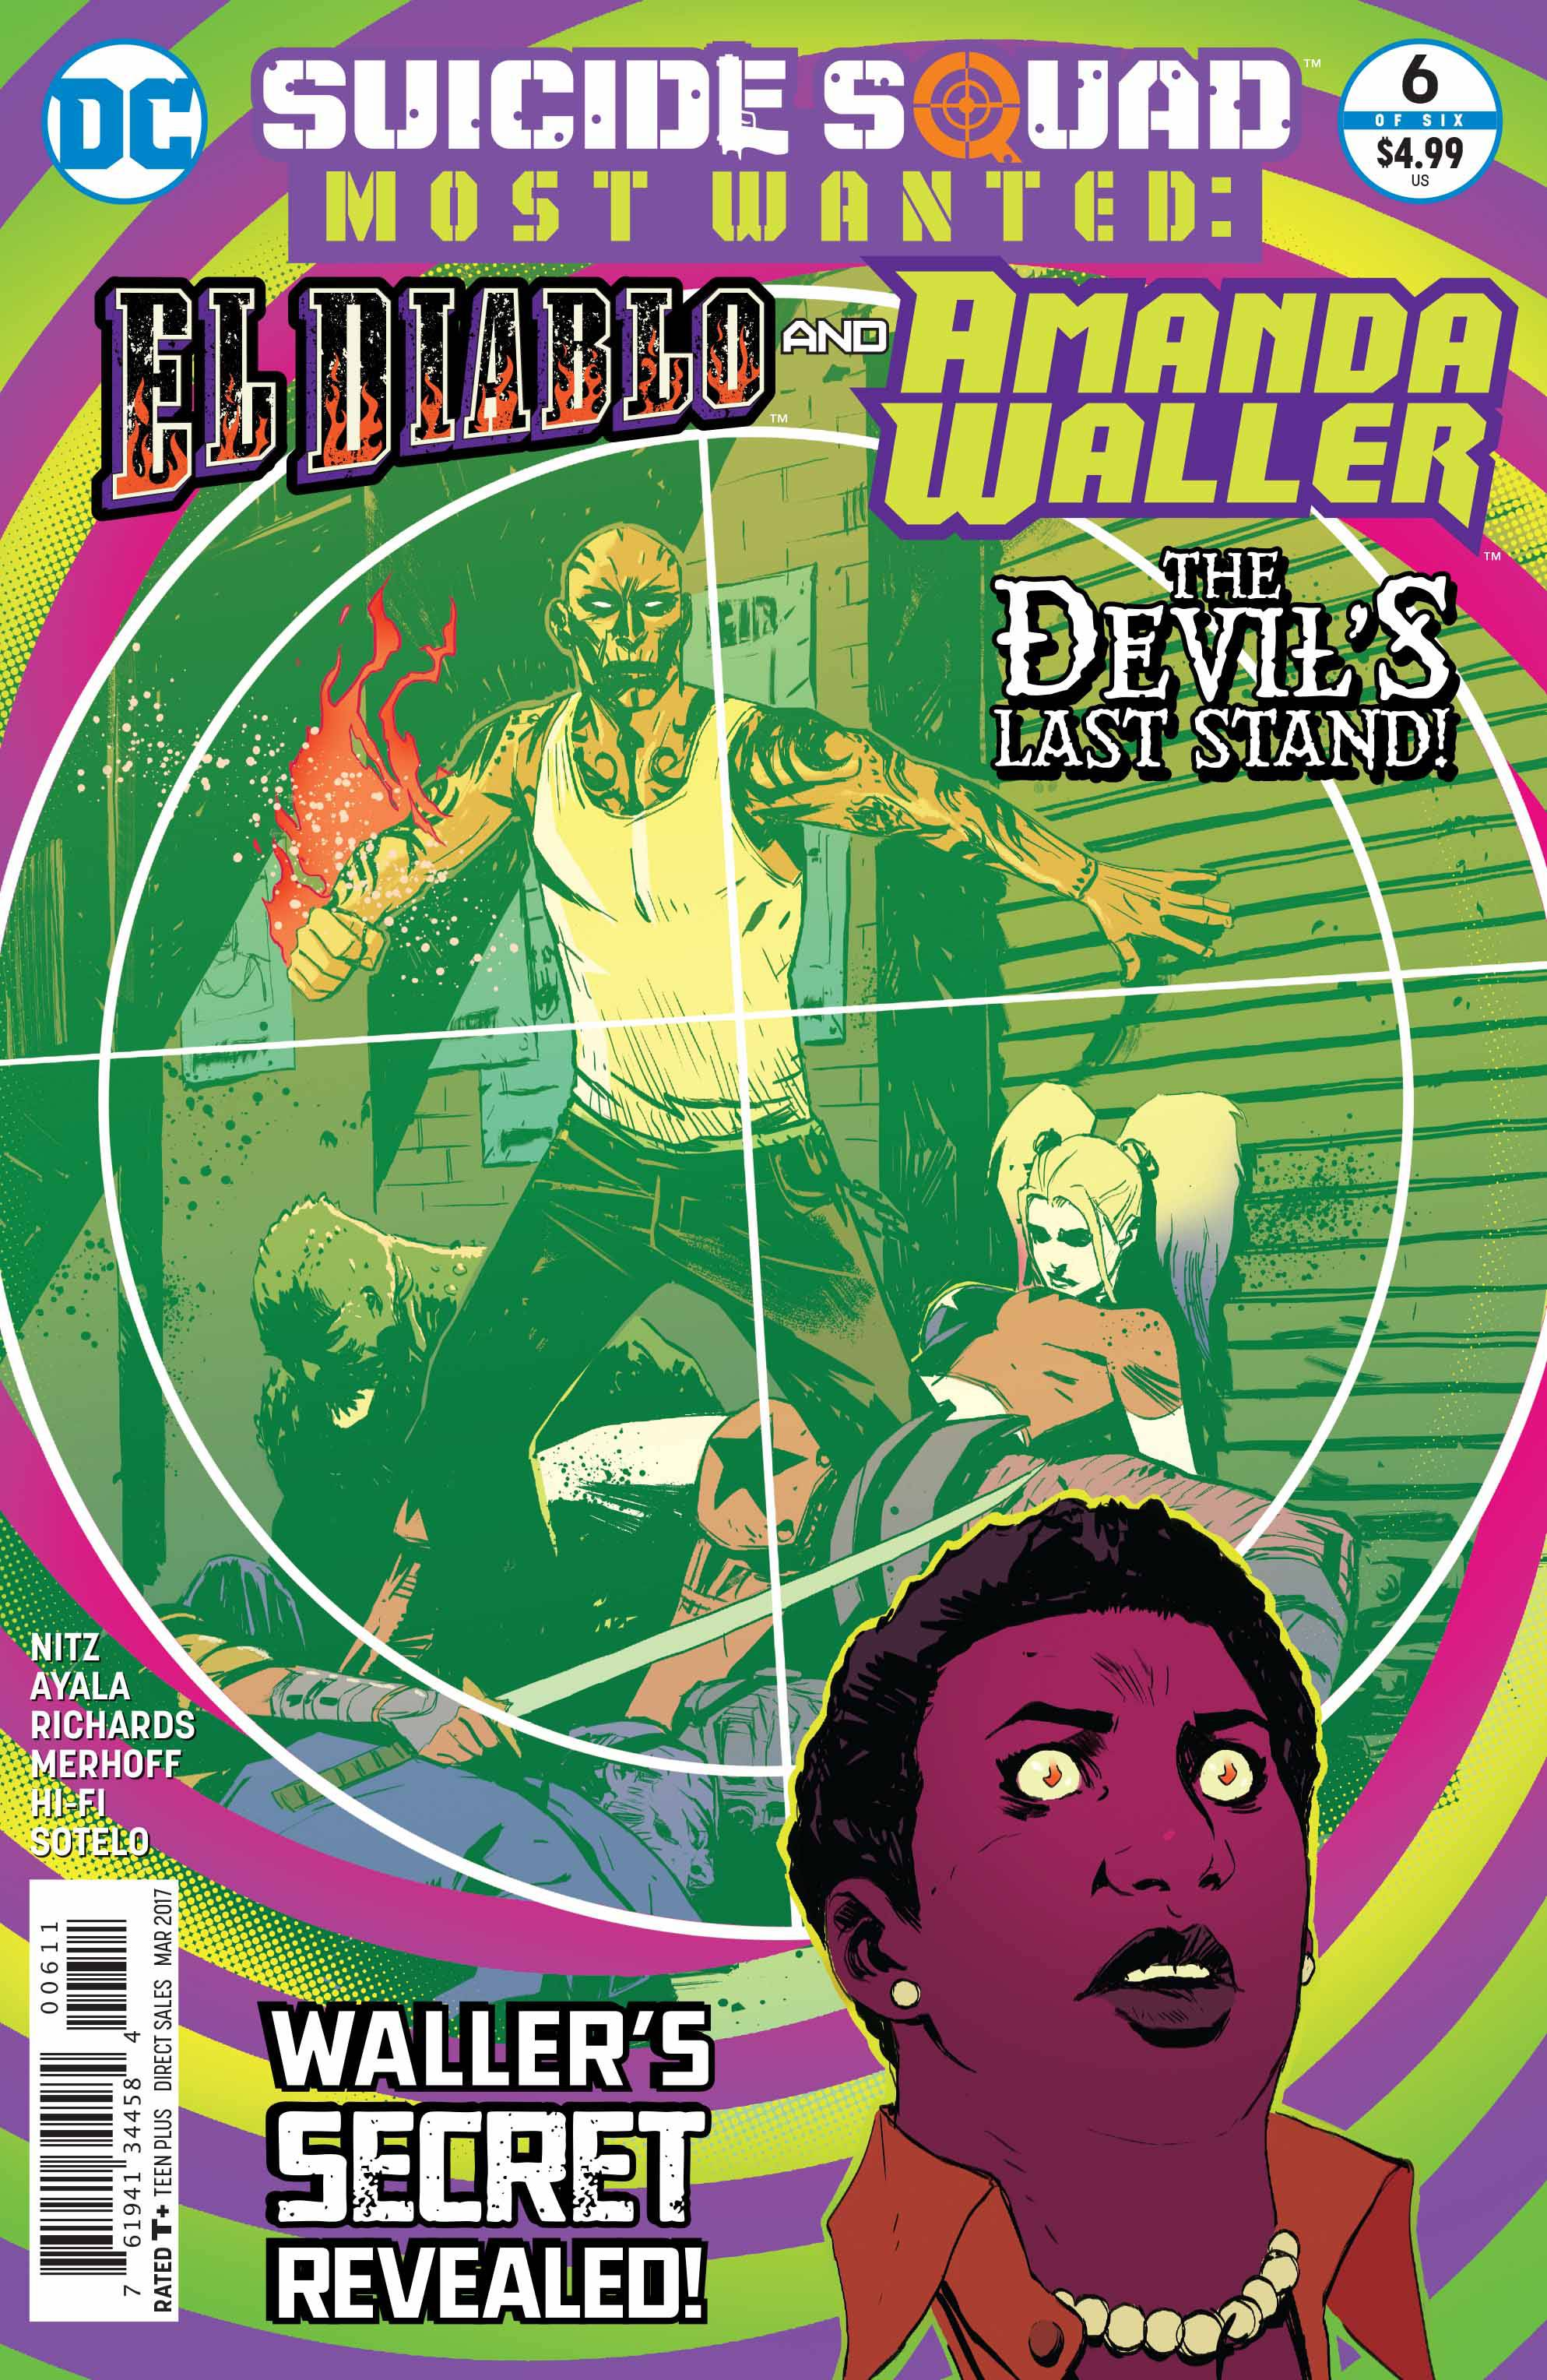 SUICIDE SQUAD MOST WANTED #6